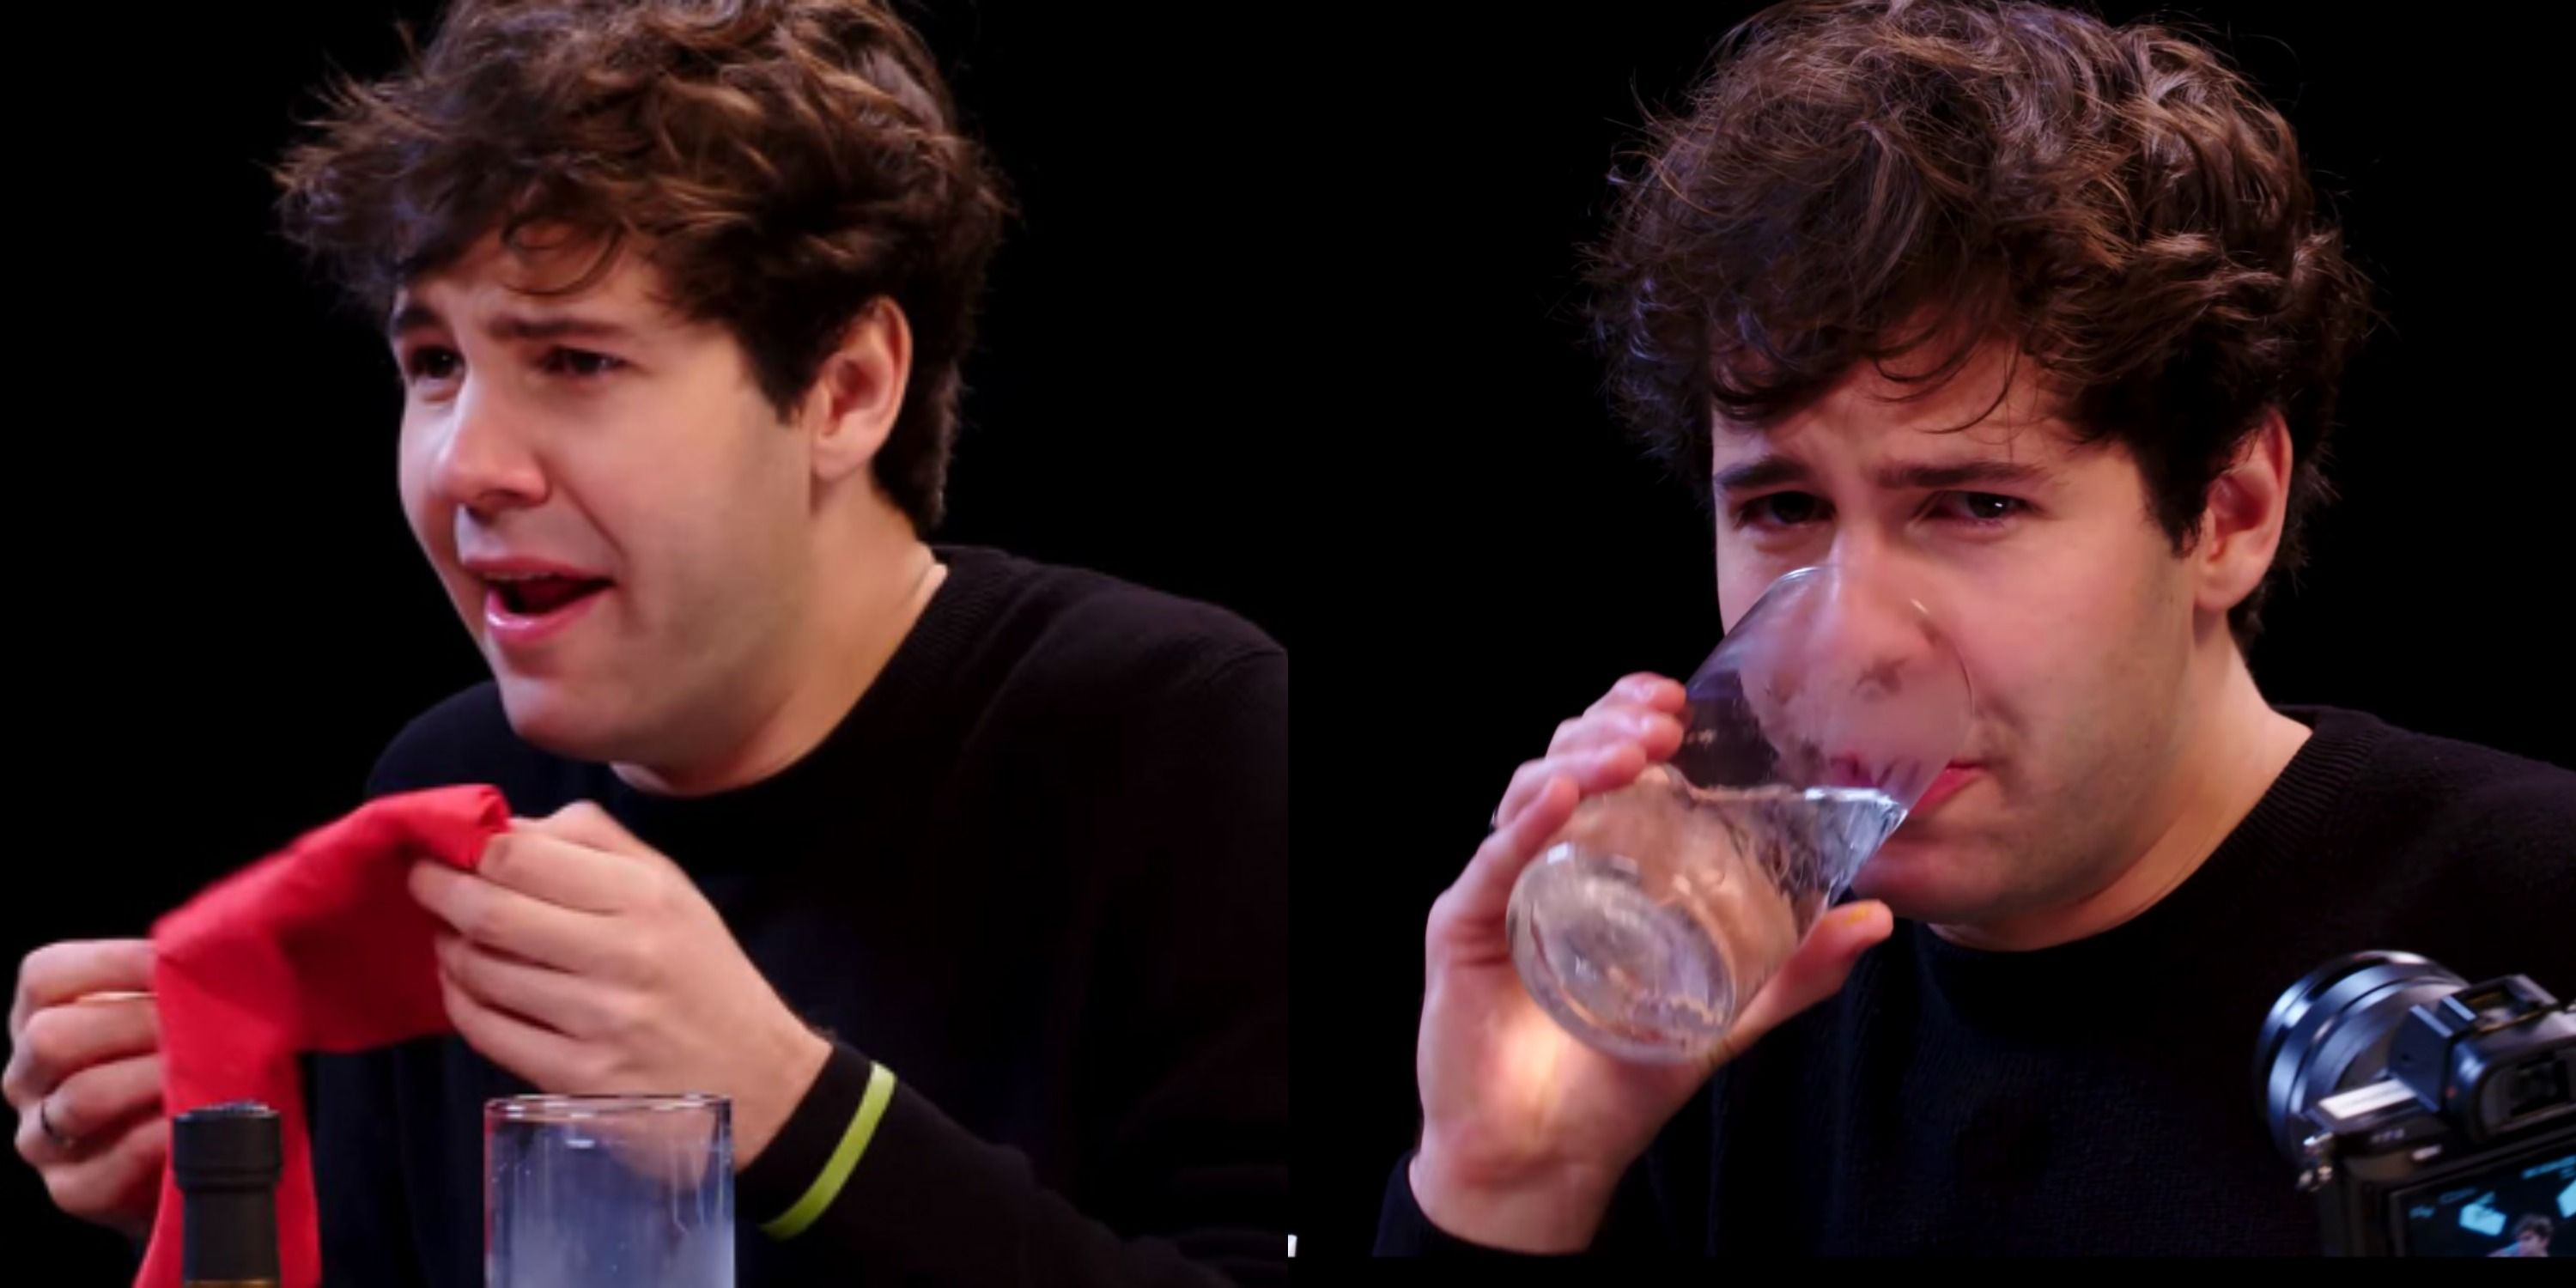 David Dobrick Puked After Eating Spicy Wings On 'Hot Ones'